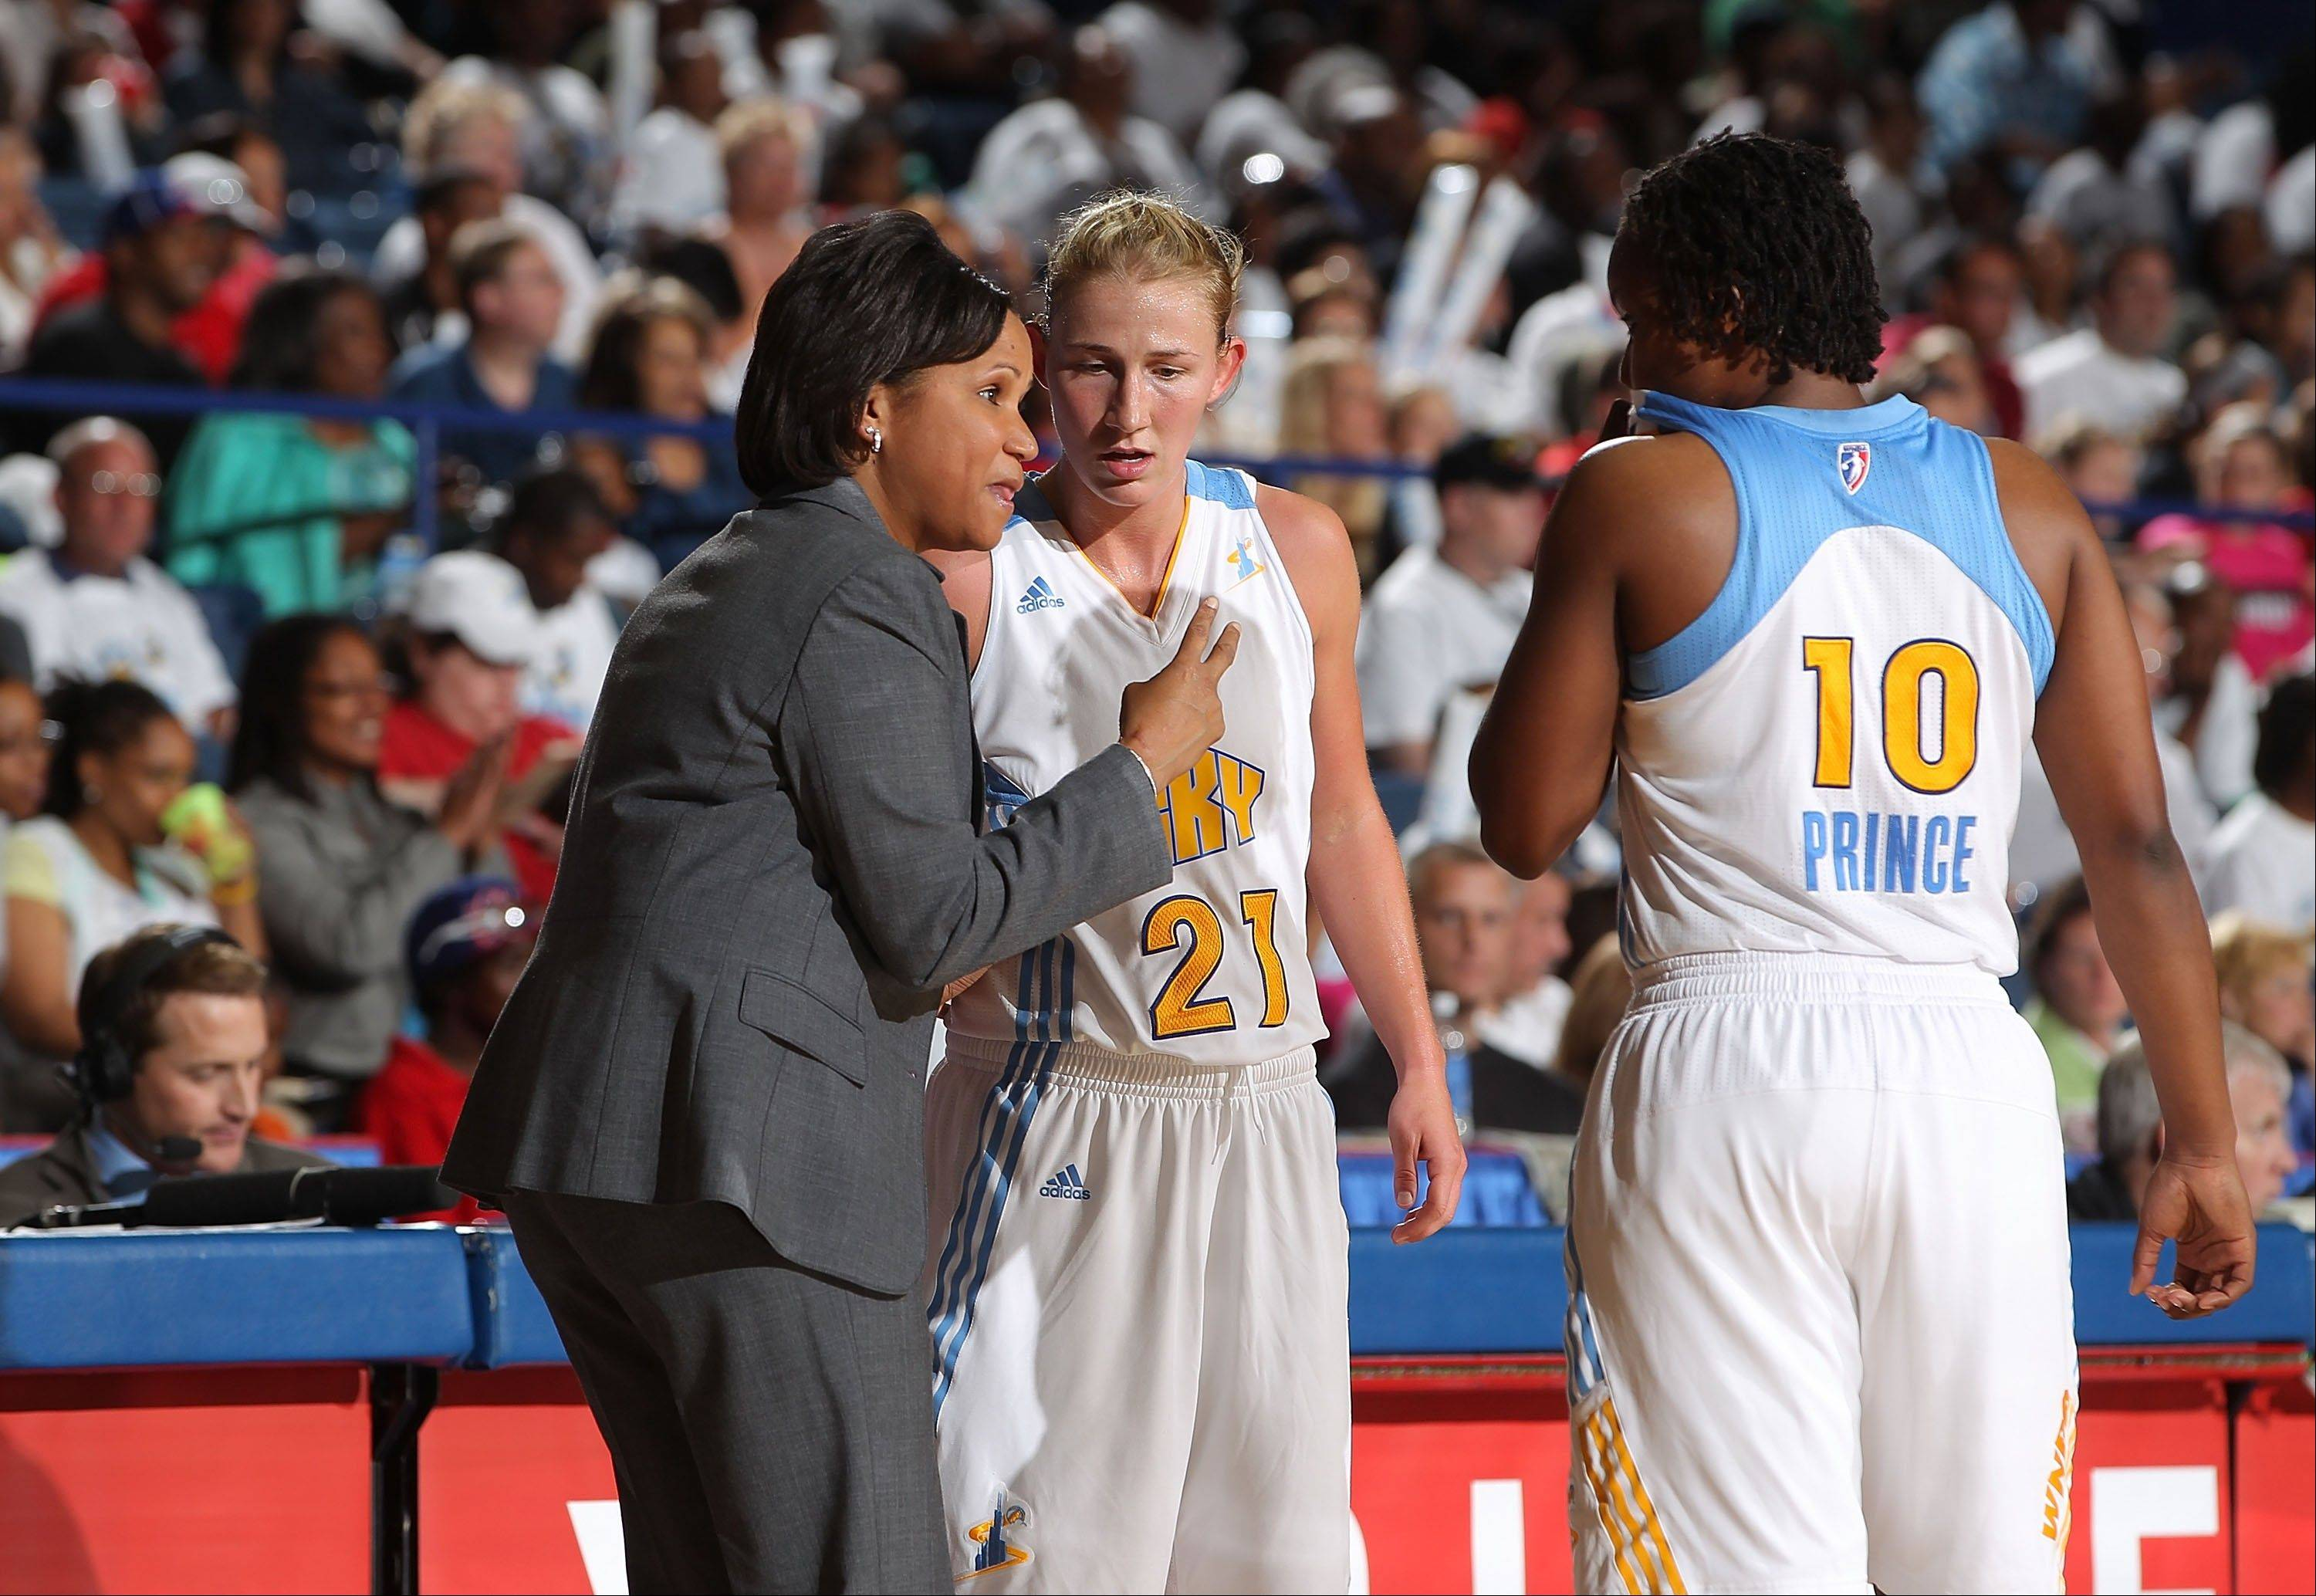 Head coach Pokey Chatman and Chicago Sky players Courtney Vandersloot (21) and Epiphany Prince (10) will open their WNBA preseason slate with a game against the Washington Mystics at New Trier High School in Winnetka.